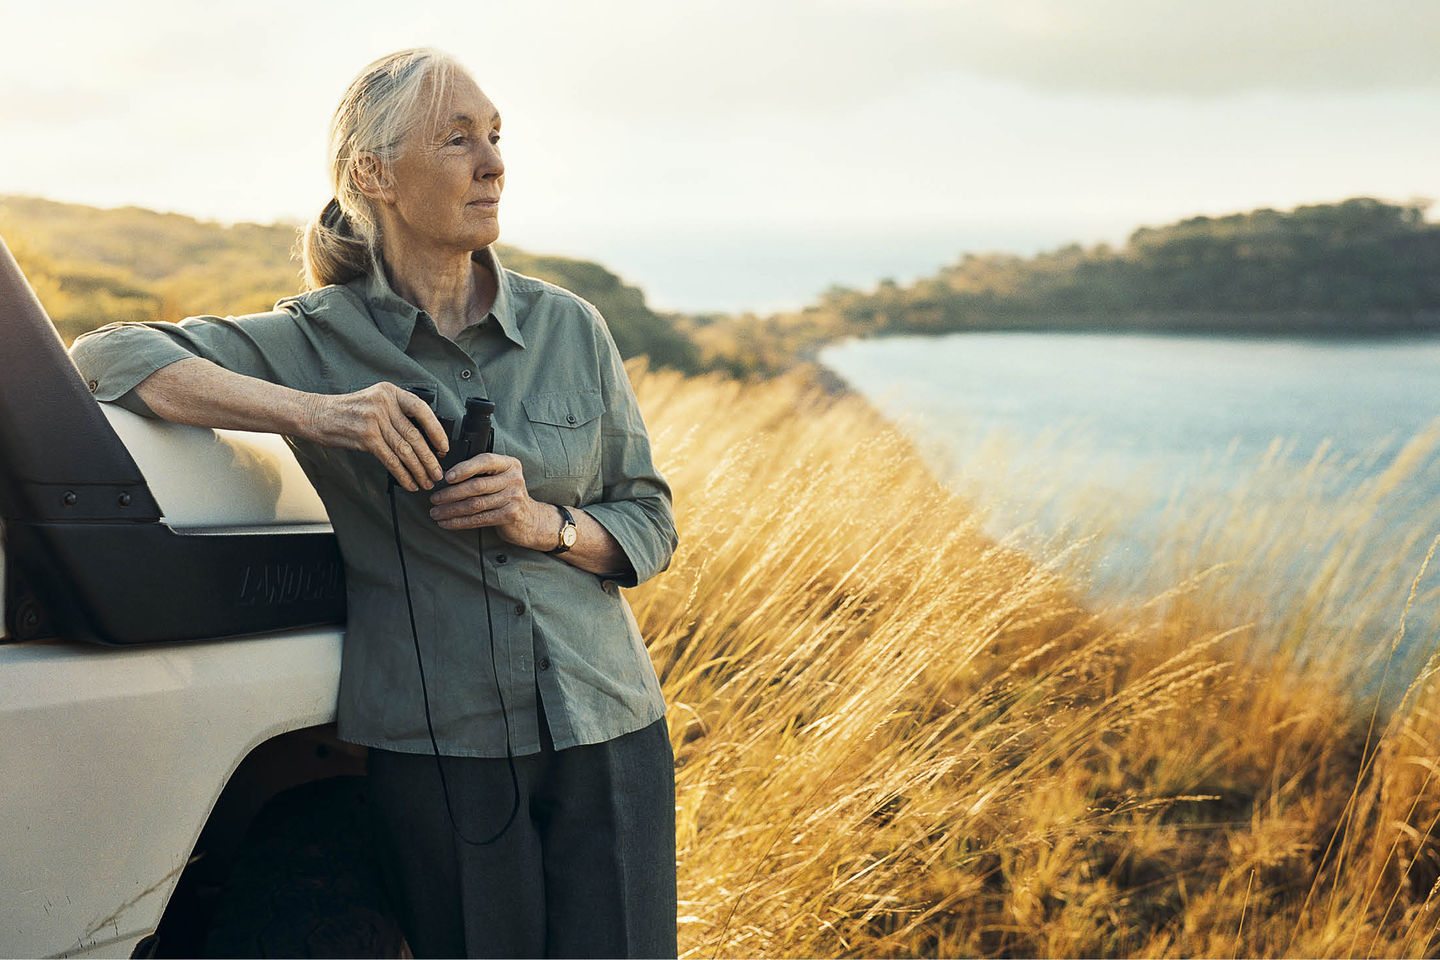 jane_goodall_icon_magazine-0-1440-0-960-crop